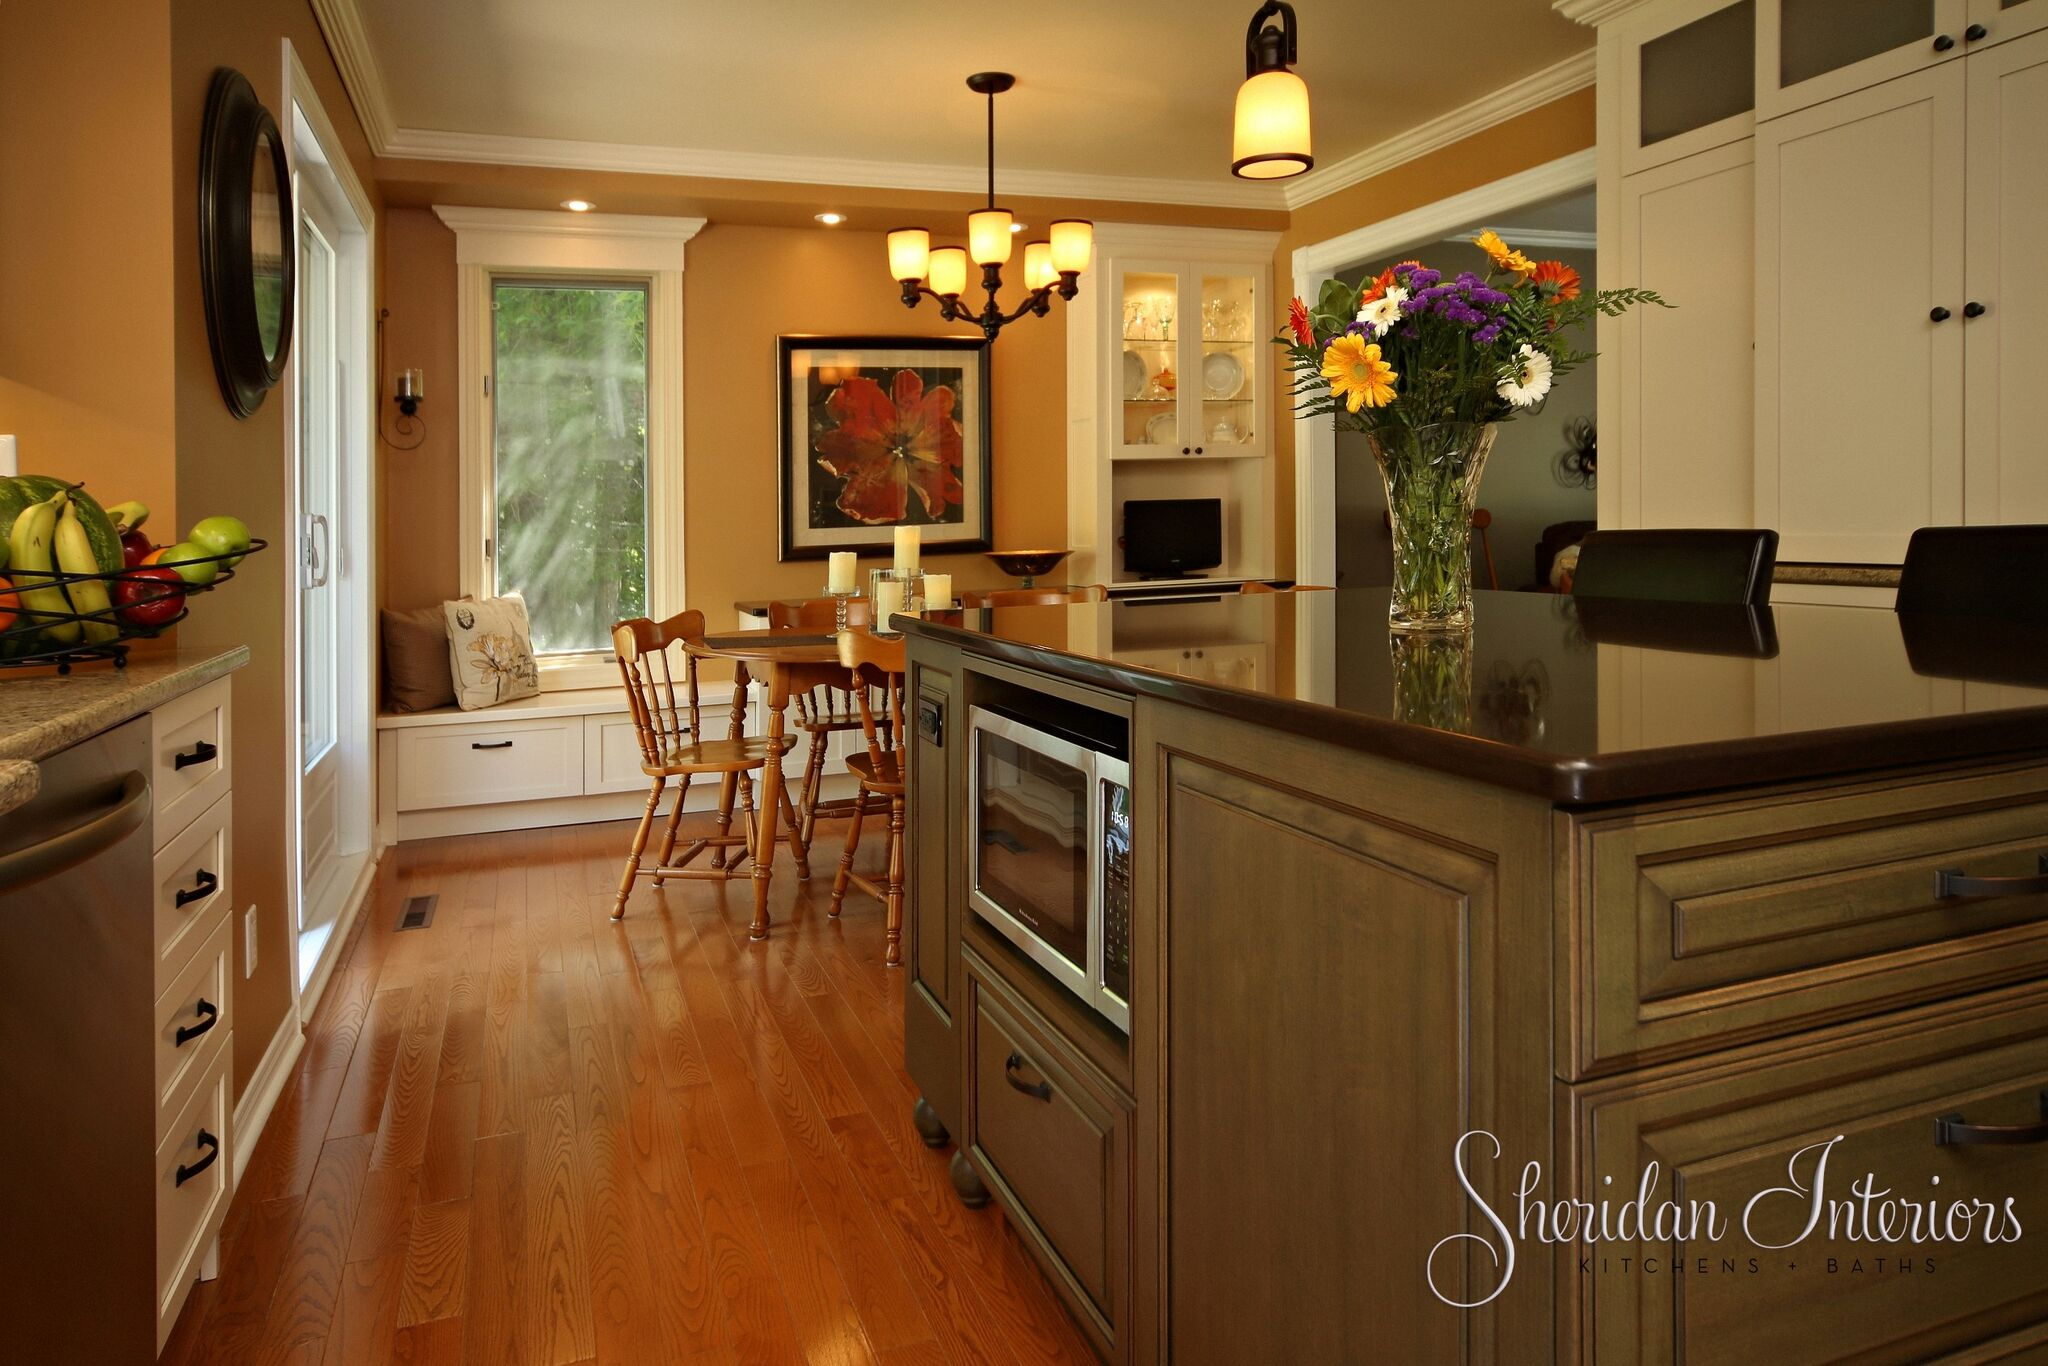 Country Kitchen with Wood Floors - Sheridan Interiors